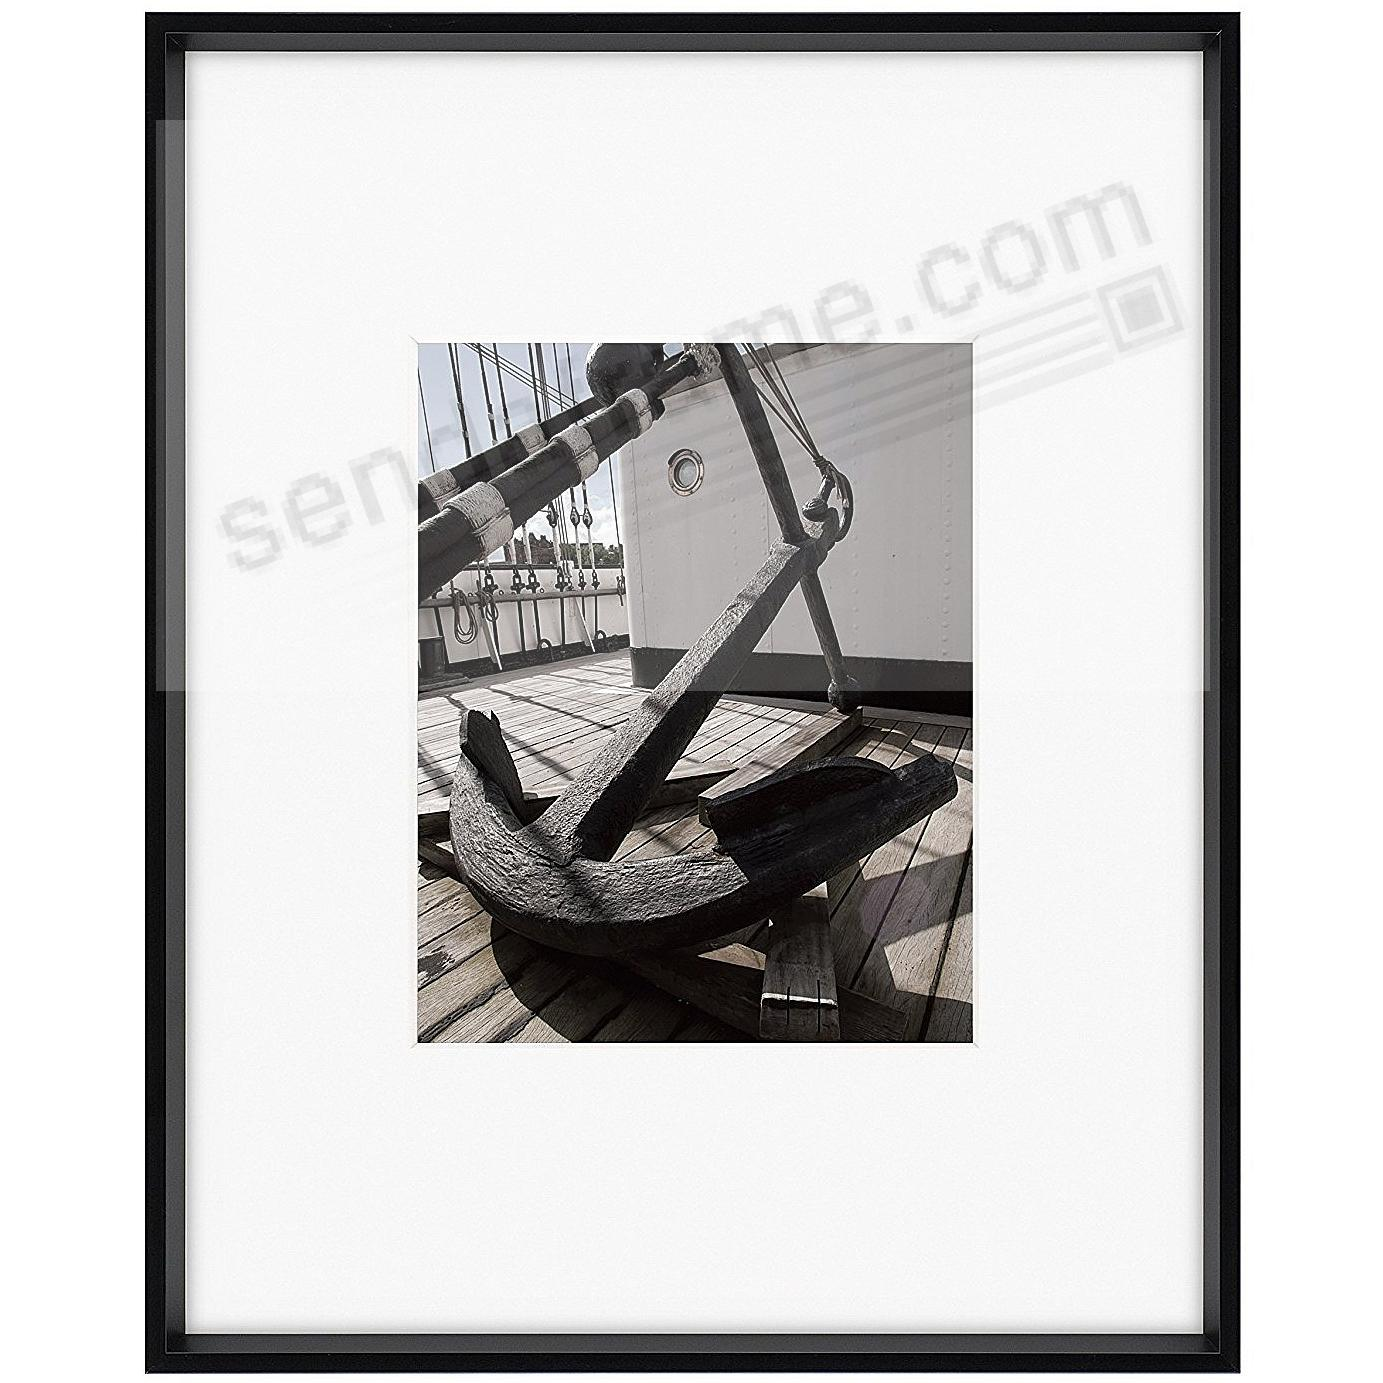 Gallery Matted Matte Black Metallic Frame 16x208x10 From Artcare